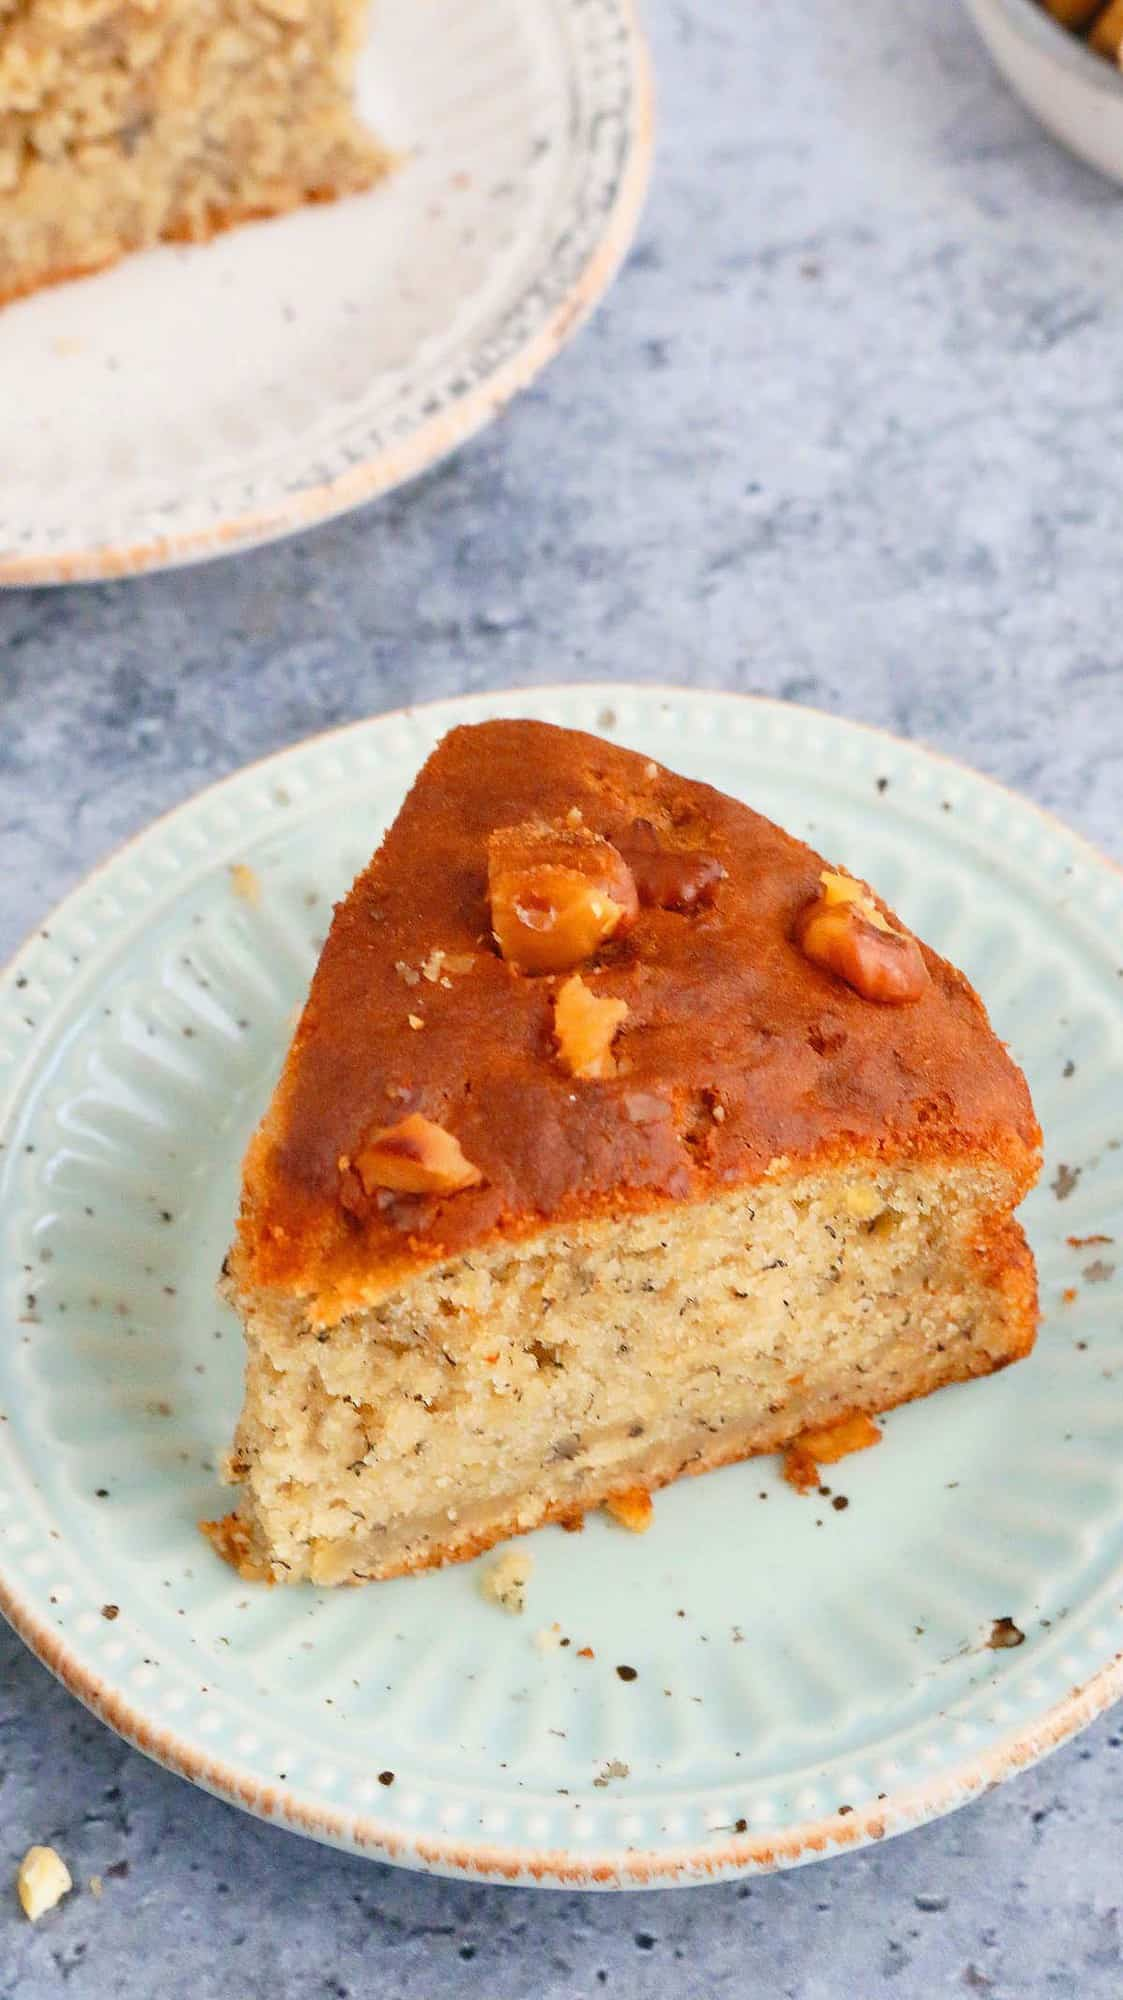 a slice of banana cake with walnuts on top